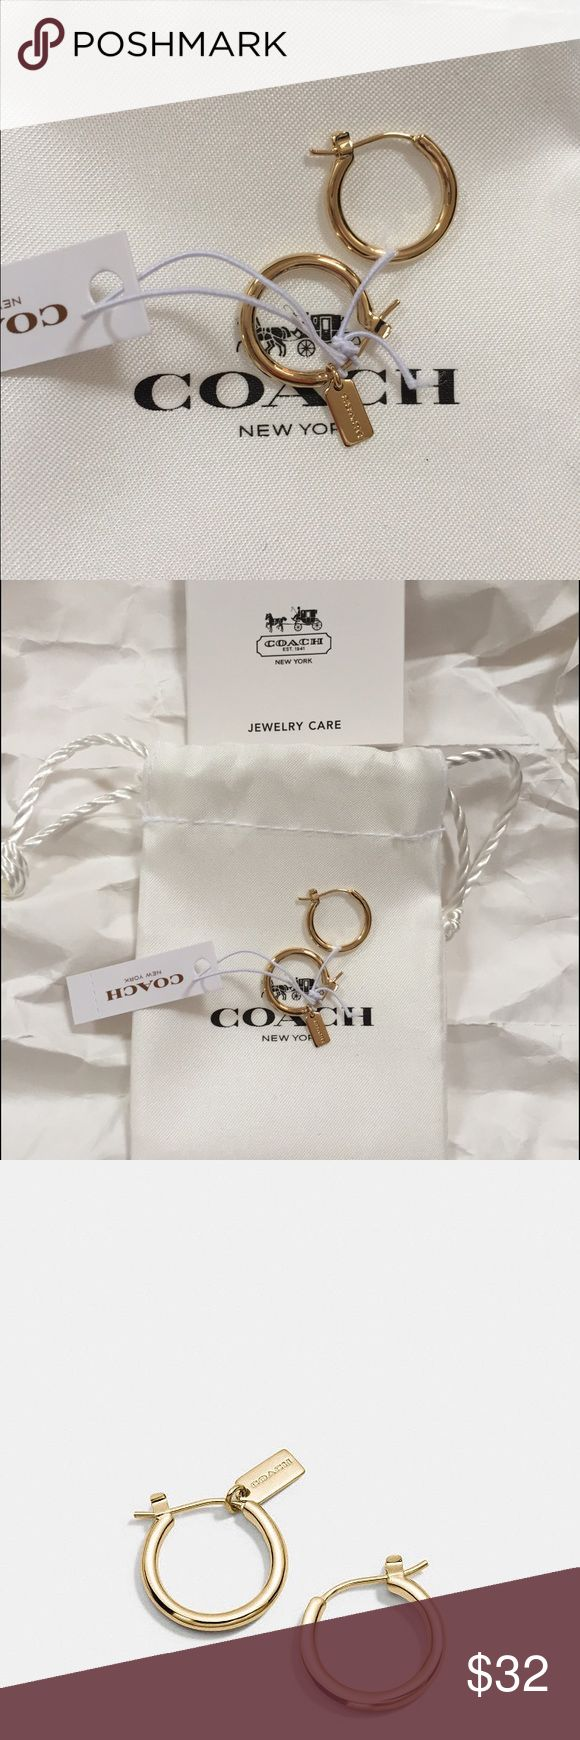 Coach Small Hoops Charm Base Hoop Earrings. Plated Metal (gold-tone) Adorned Cutest mini hang tag. Comes in Coach Bag & jewelry care info. Brand new! Coach Jewelry Earrings